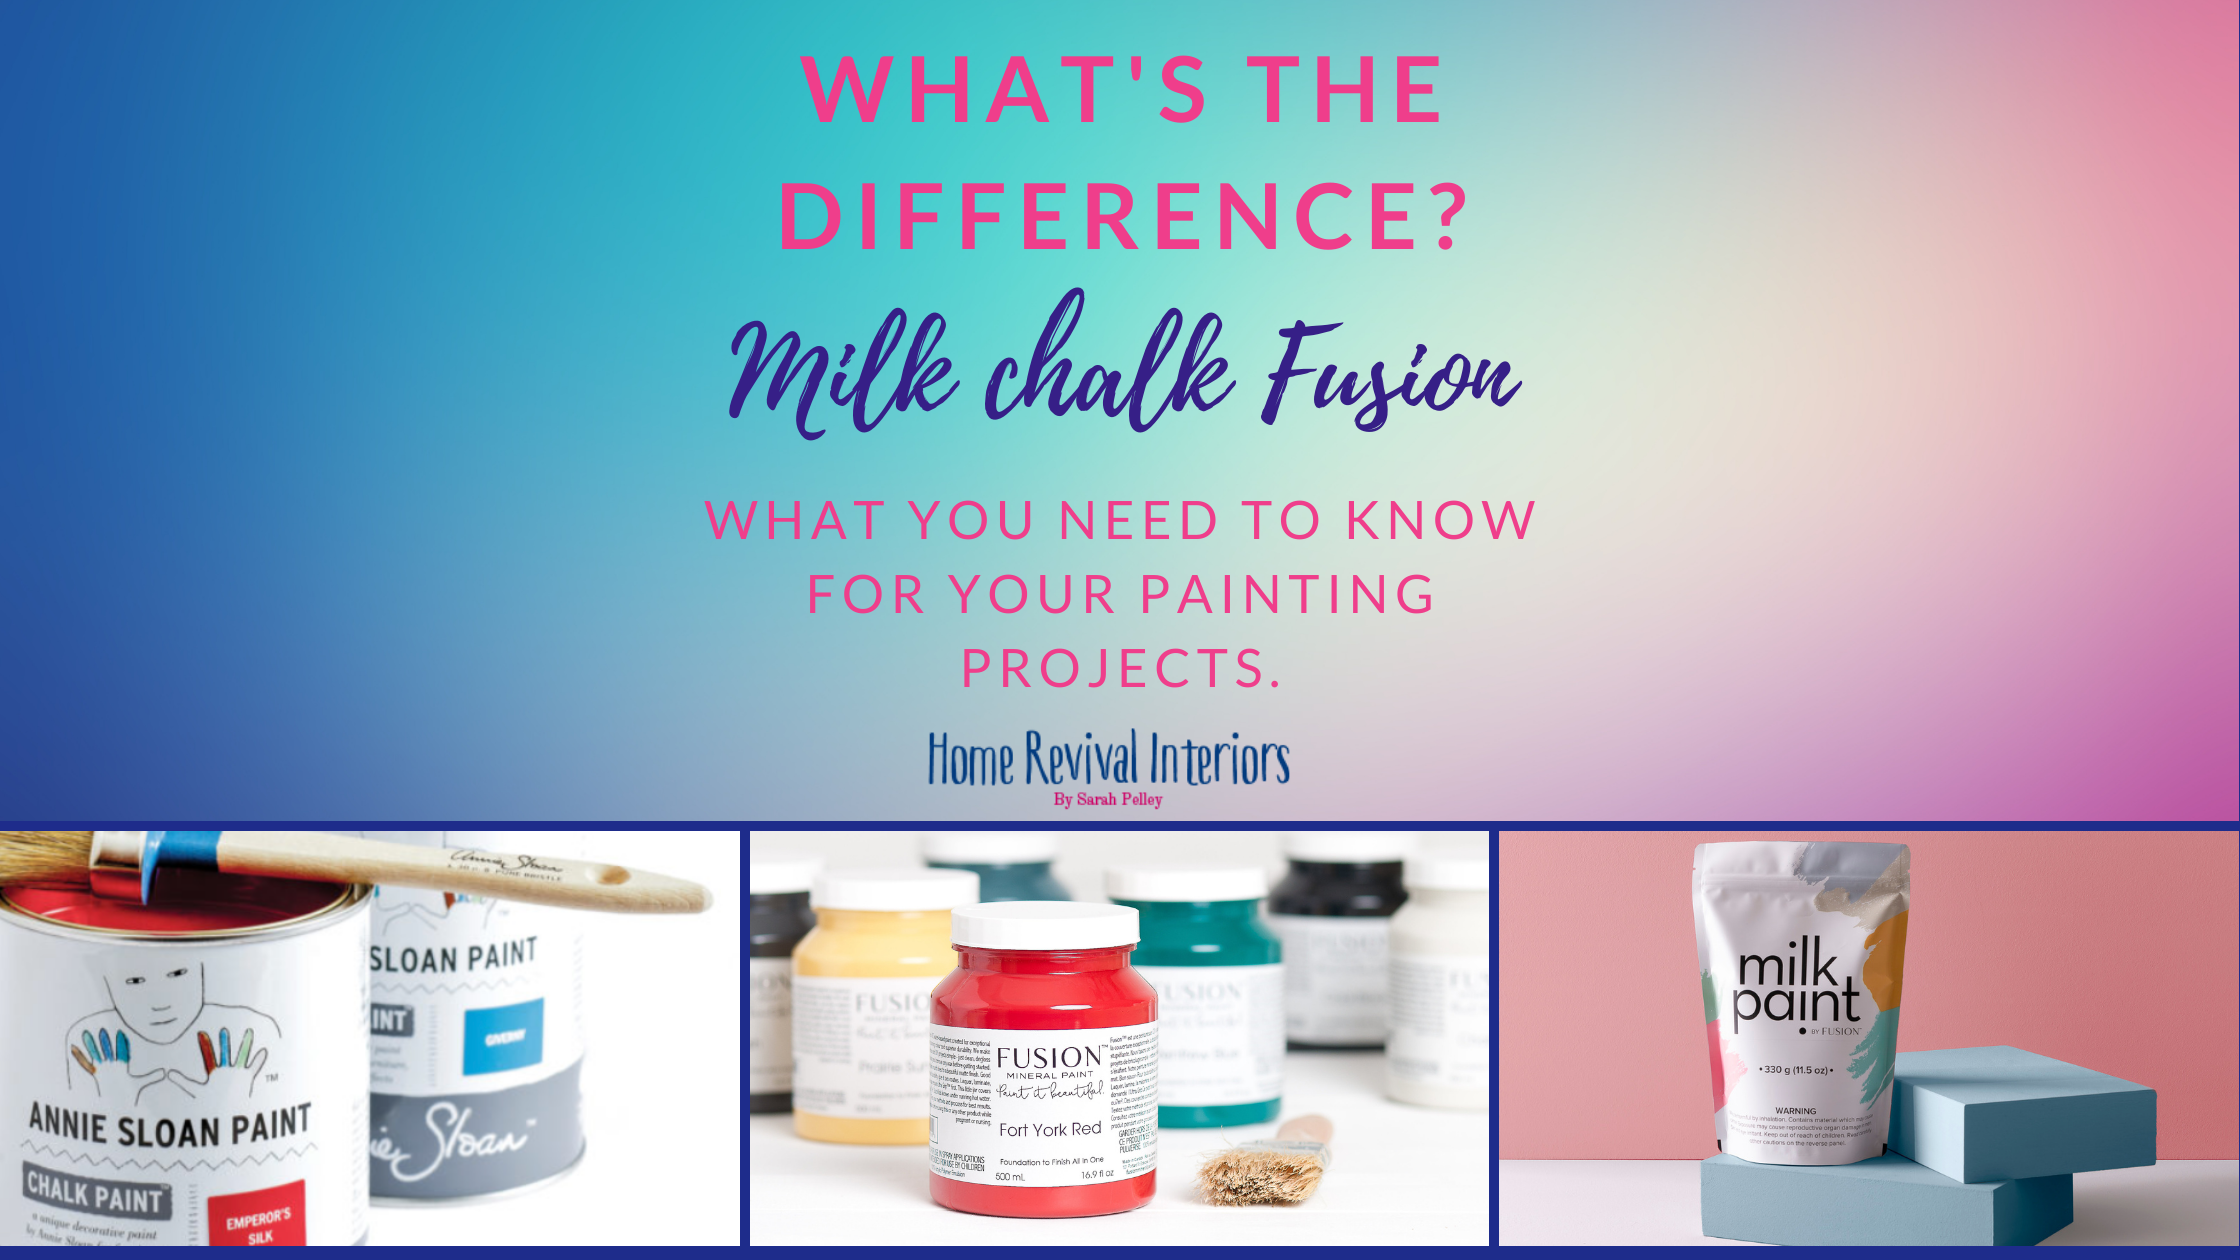 3 TYPES OF PAINT SIDE BY SIDE CHALK, MILK, MINERAL